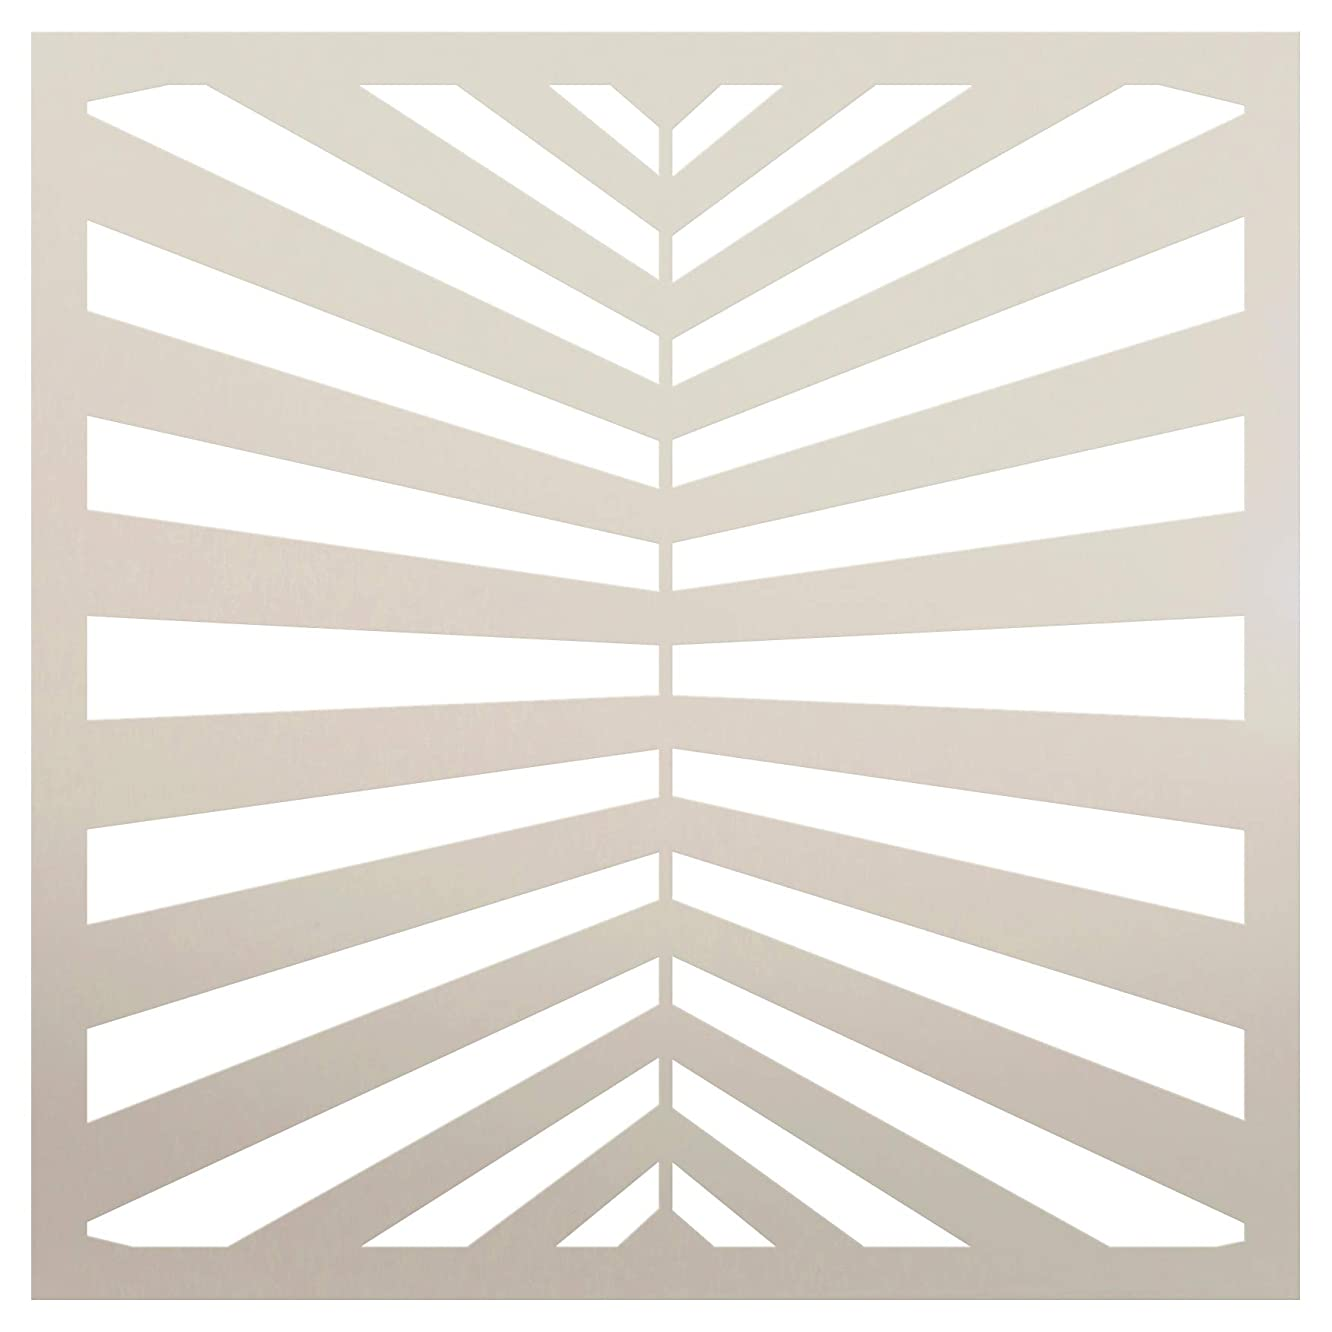 Fun with Stripes Multimedia Perspective Stripe Stencil StudioR12 | Wood Sign | Reusable Mylar Template | Wall Decor | Multi Layering Art Project | Journal Art Deco | DIY Home - Choose Size (9